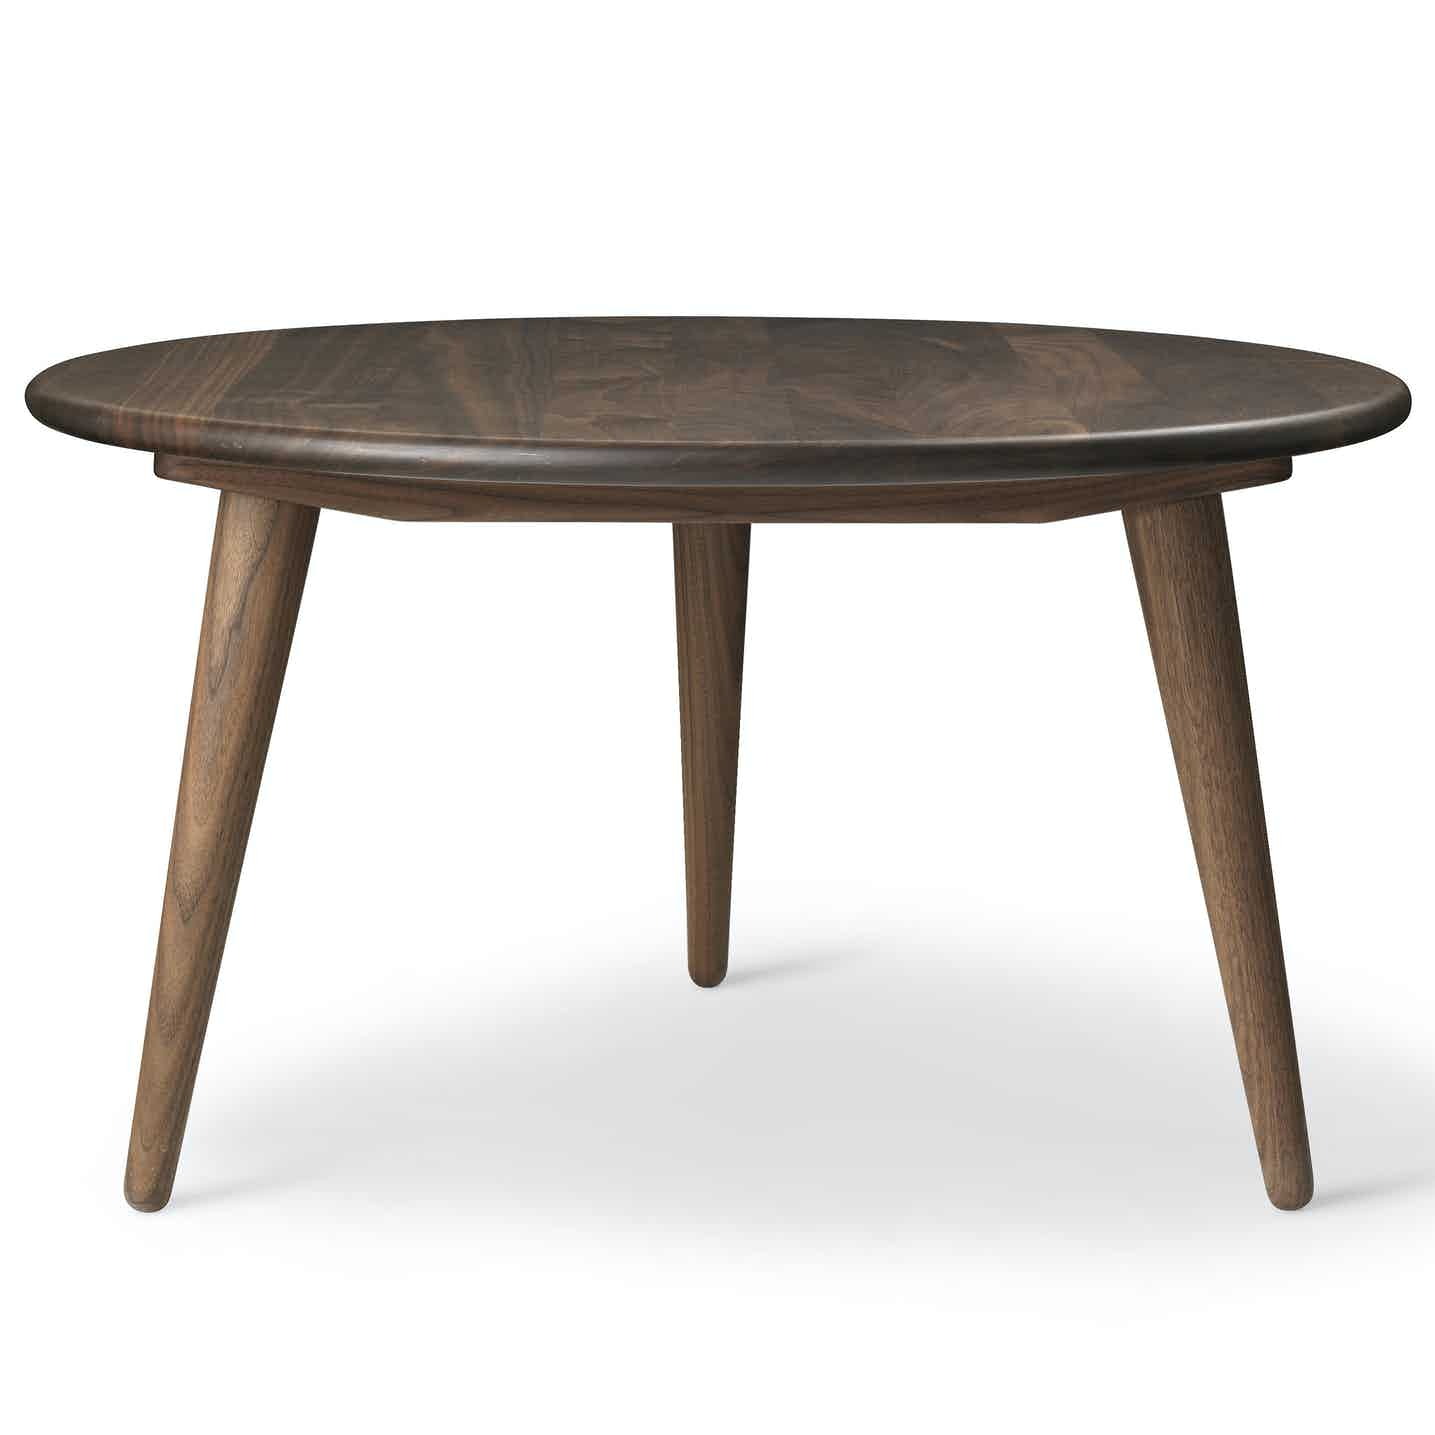 Carl-hansen-son-walnut-ch008-haute-living